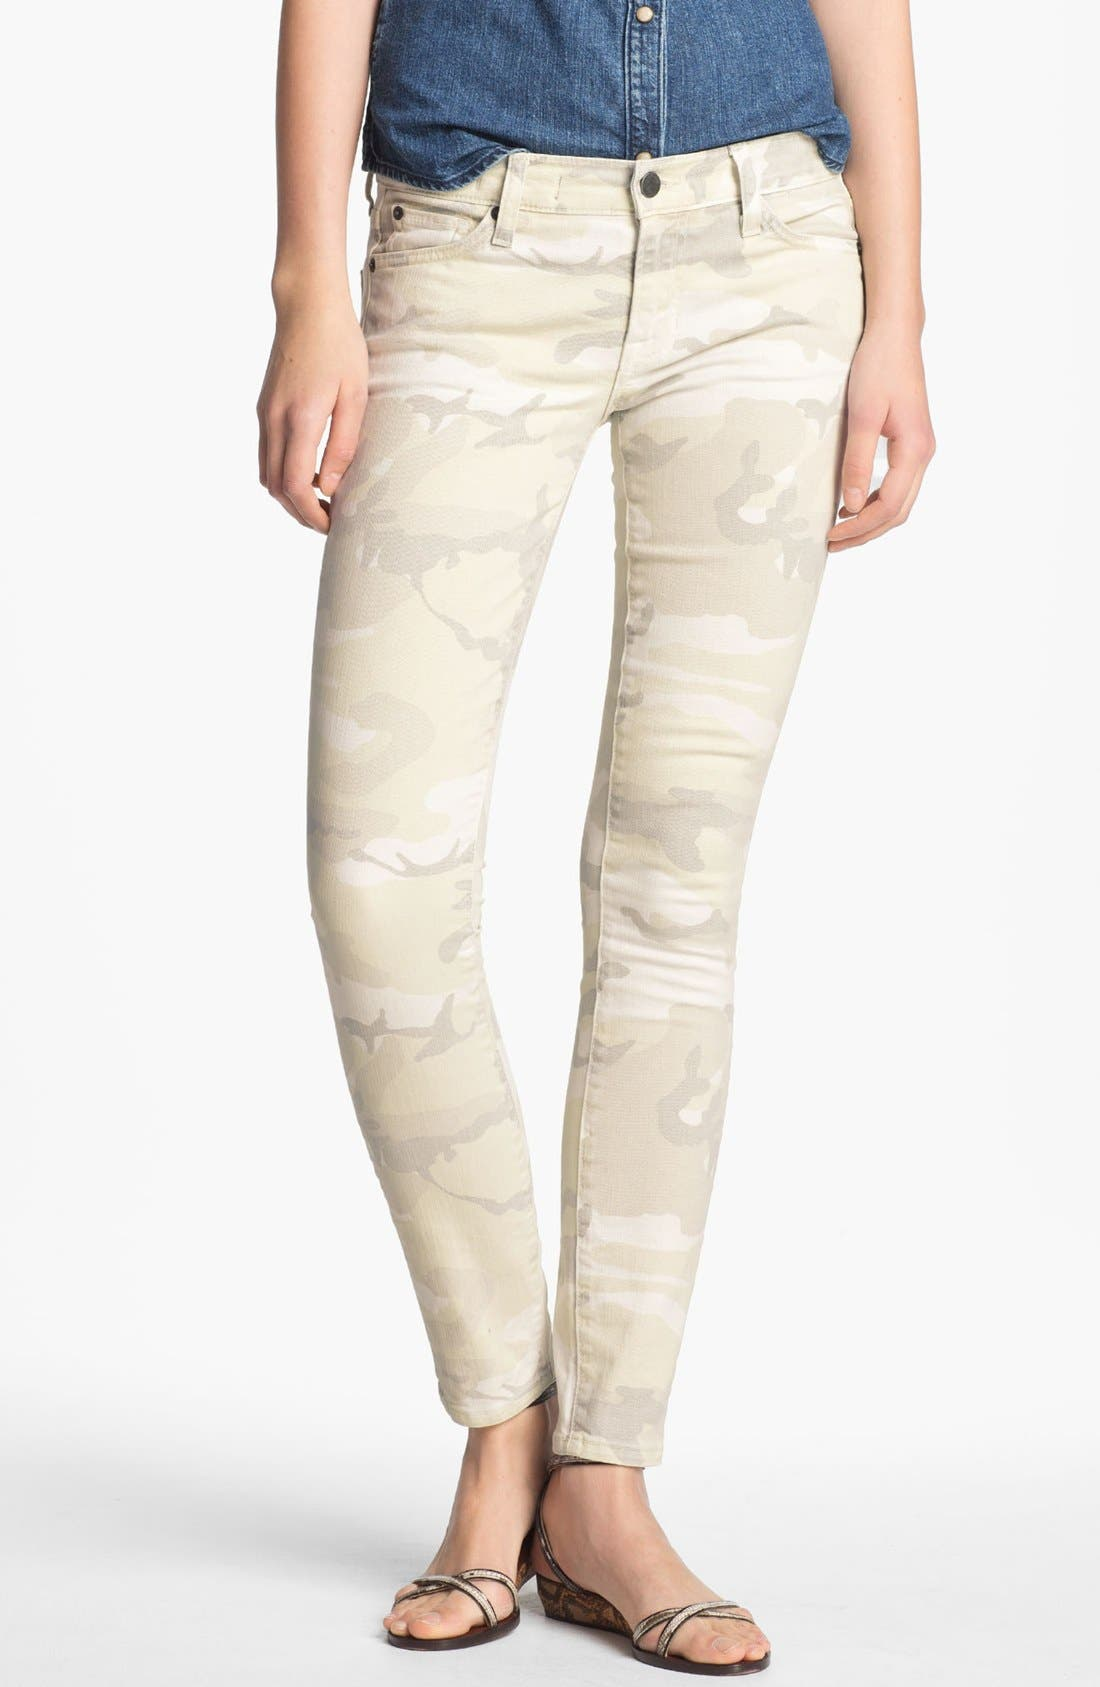 Main Image - TEXTILE Elizabeth and James 'Debbie' Camo Print Stretch Jeans